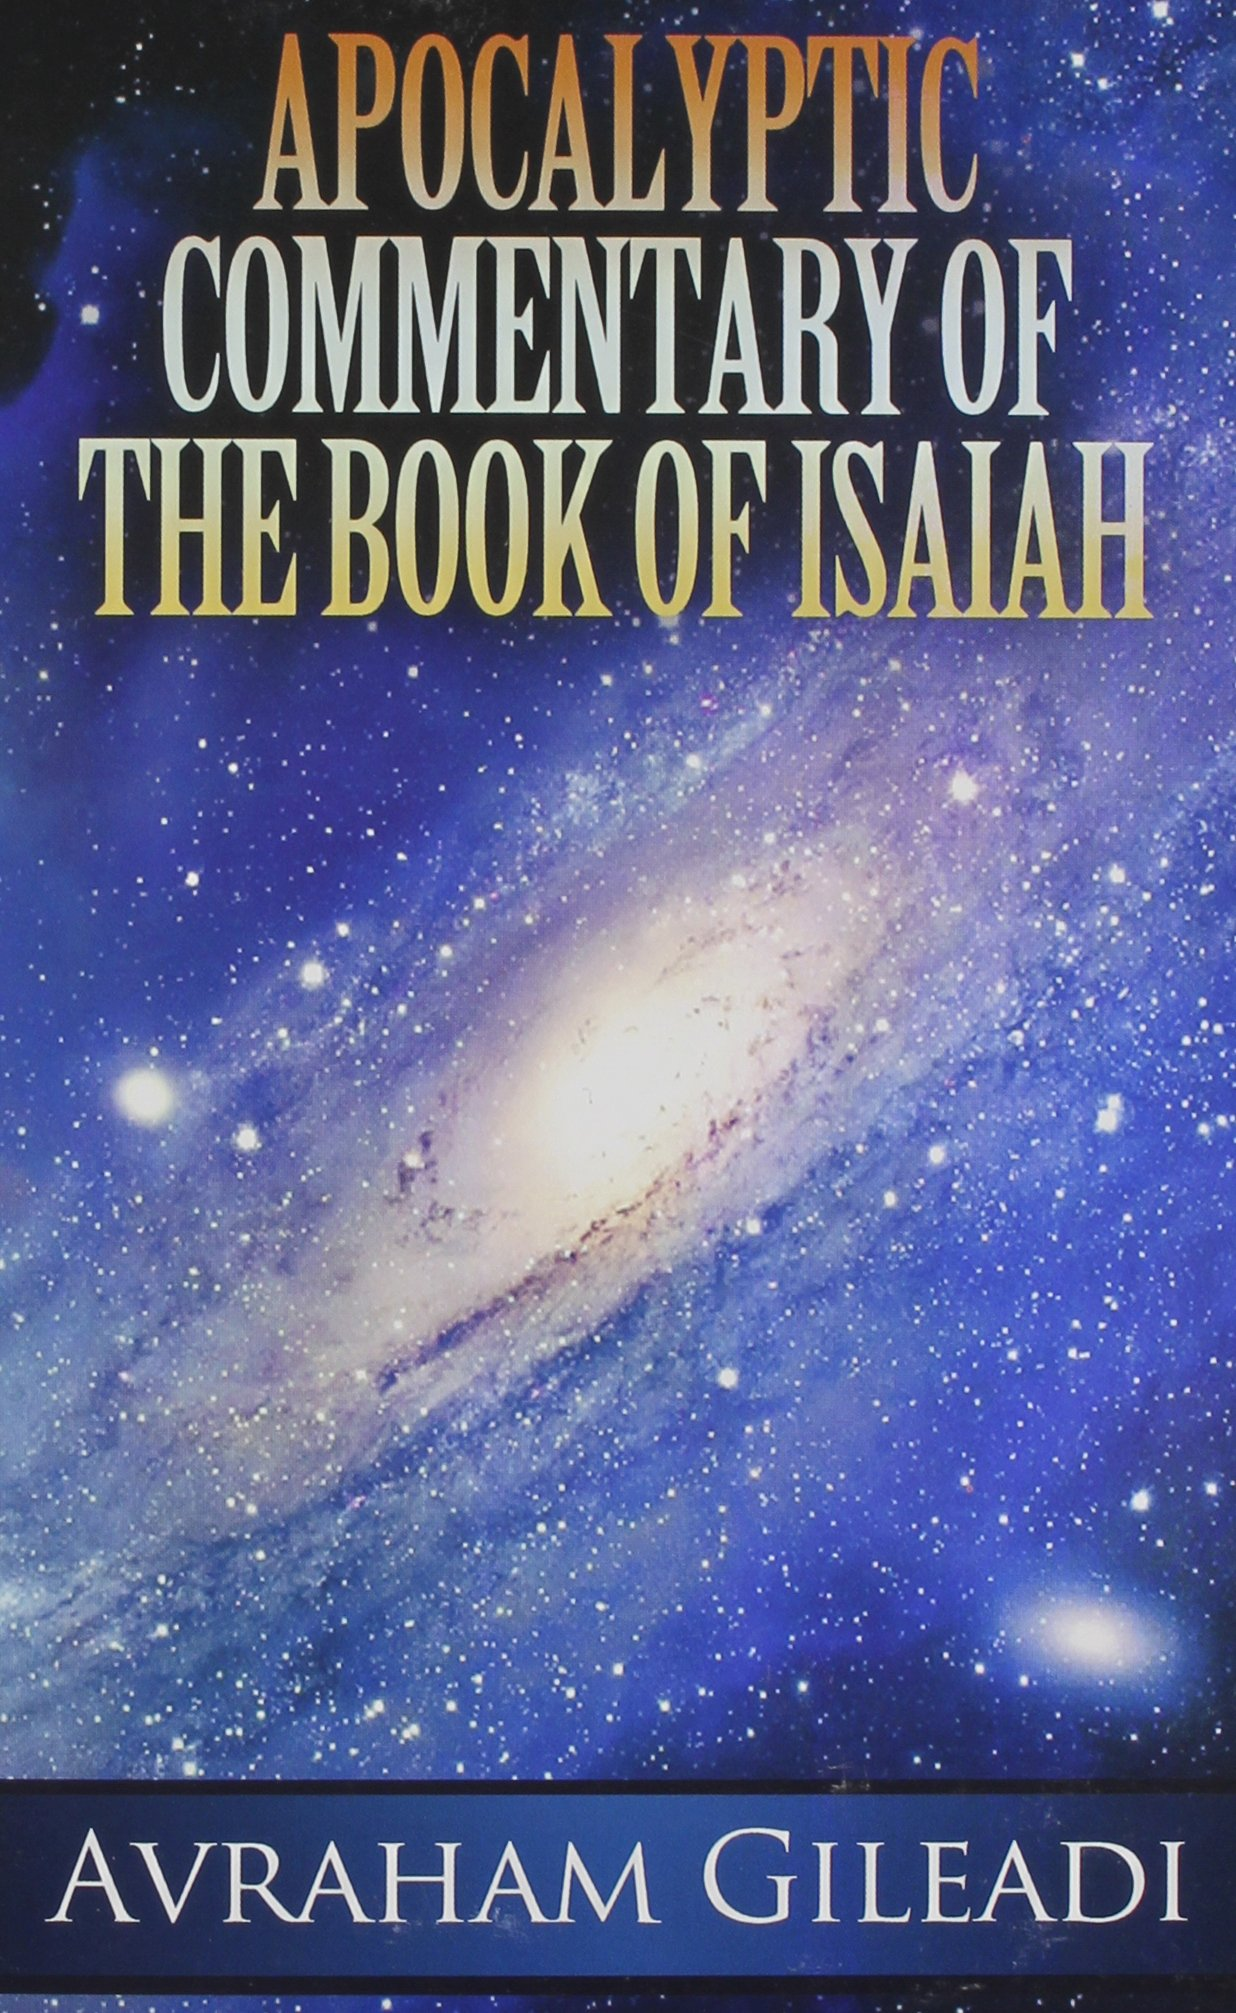 Image result for apocalyptic commentary of the book of isaiah